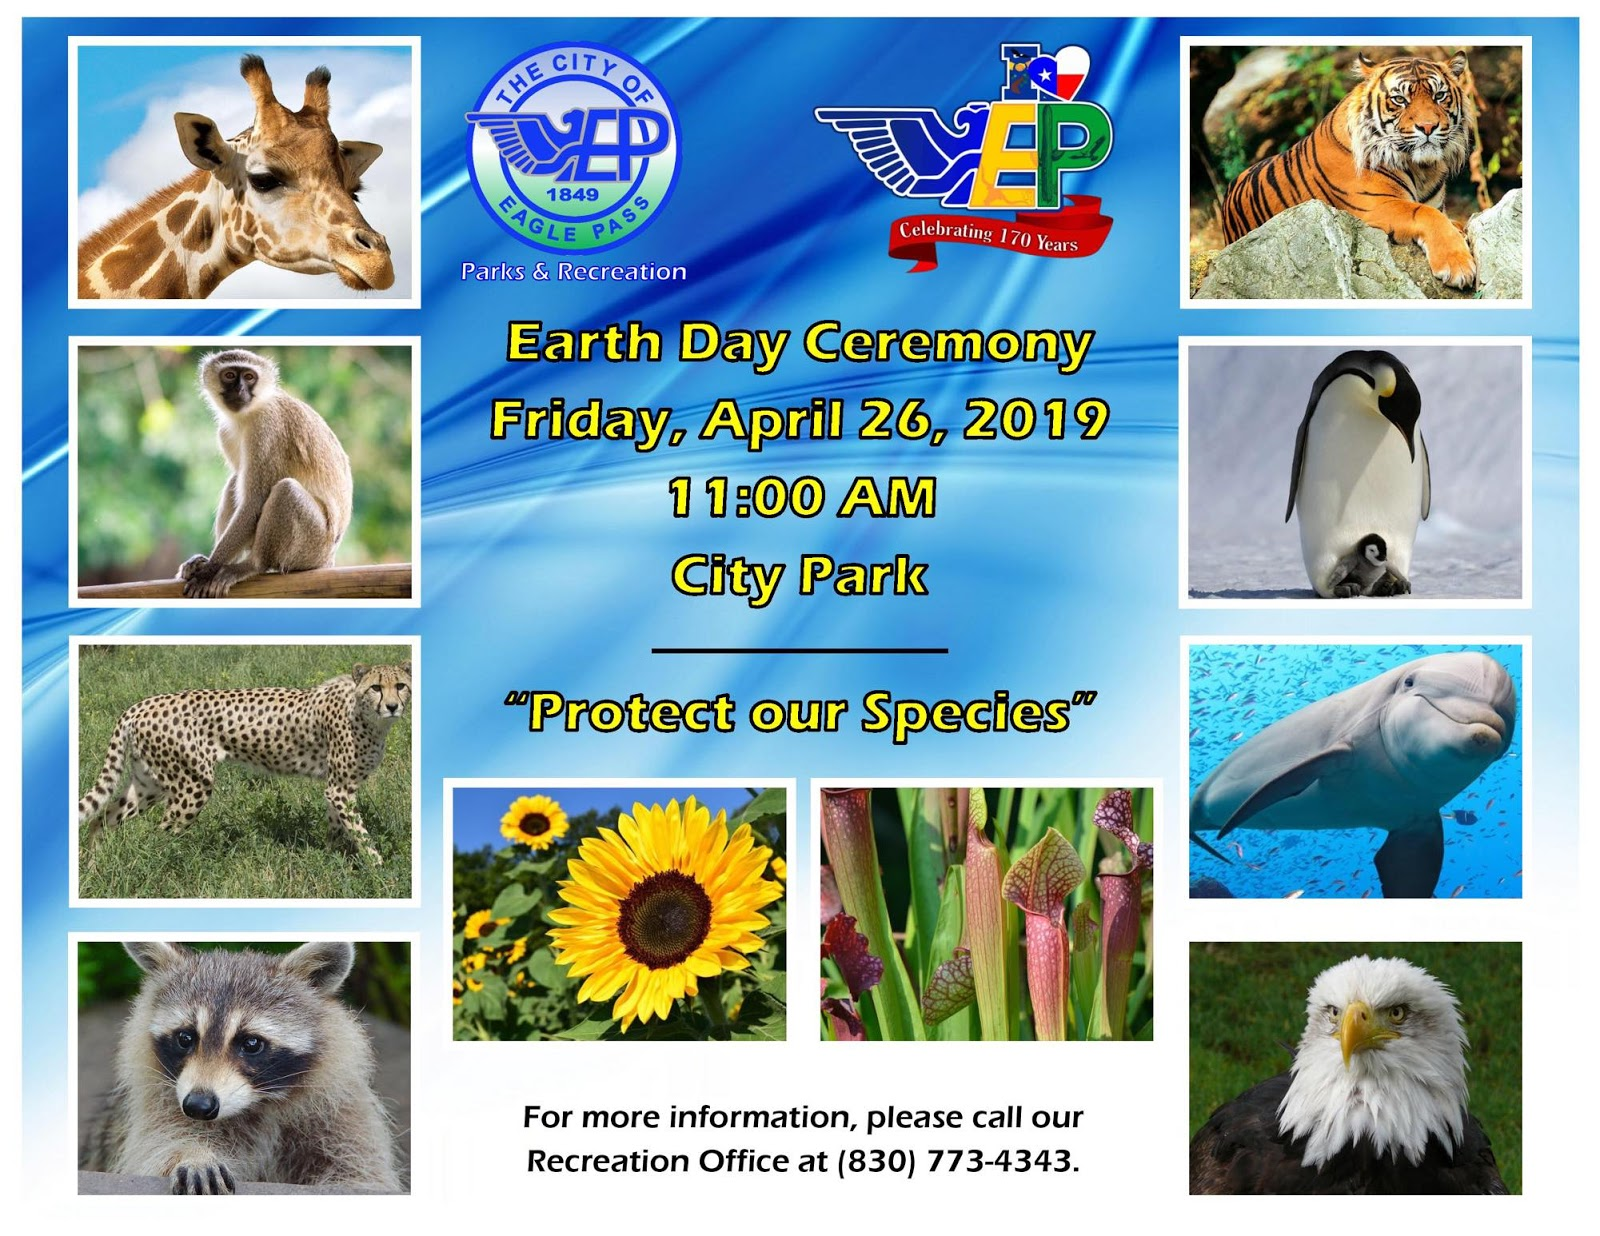 Eagle Pass ISD - iVision: City of Eagle Pass Earth Day Ceremony